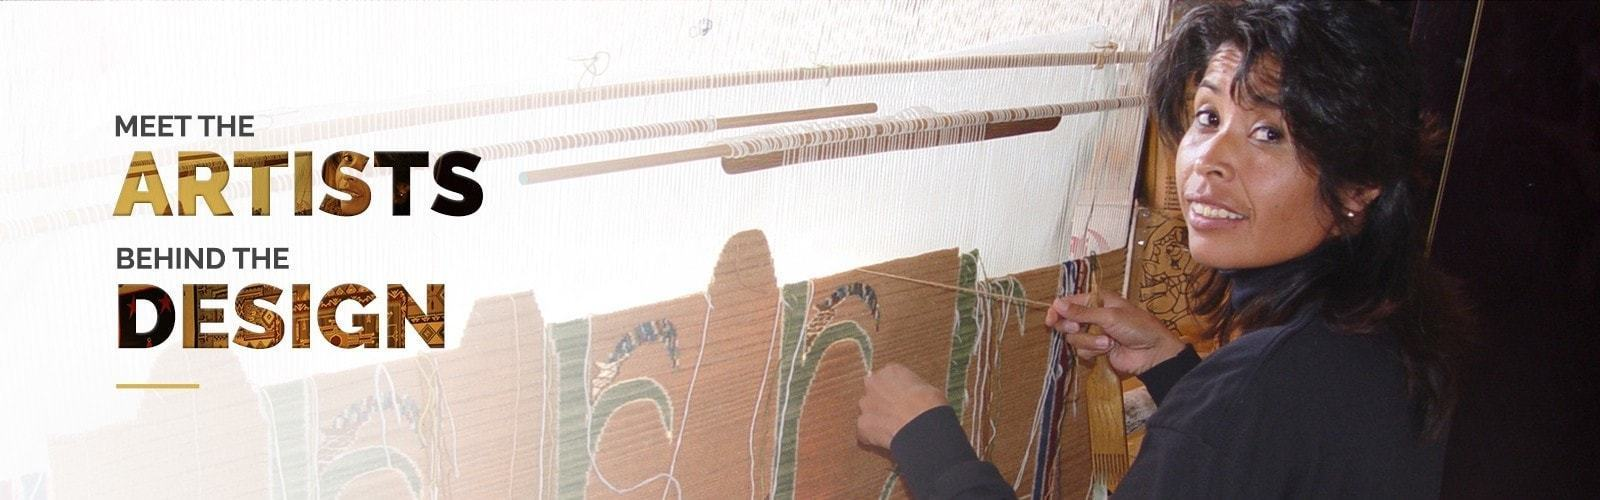 Navajo Weaver at work. Meet the Navajo Weavers Navaho Rugs, Navajo weavings, Navajo Textiles ... designs to match every decor.